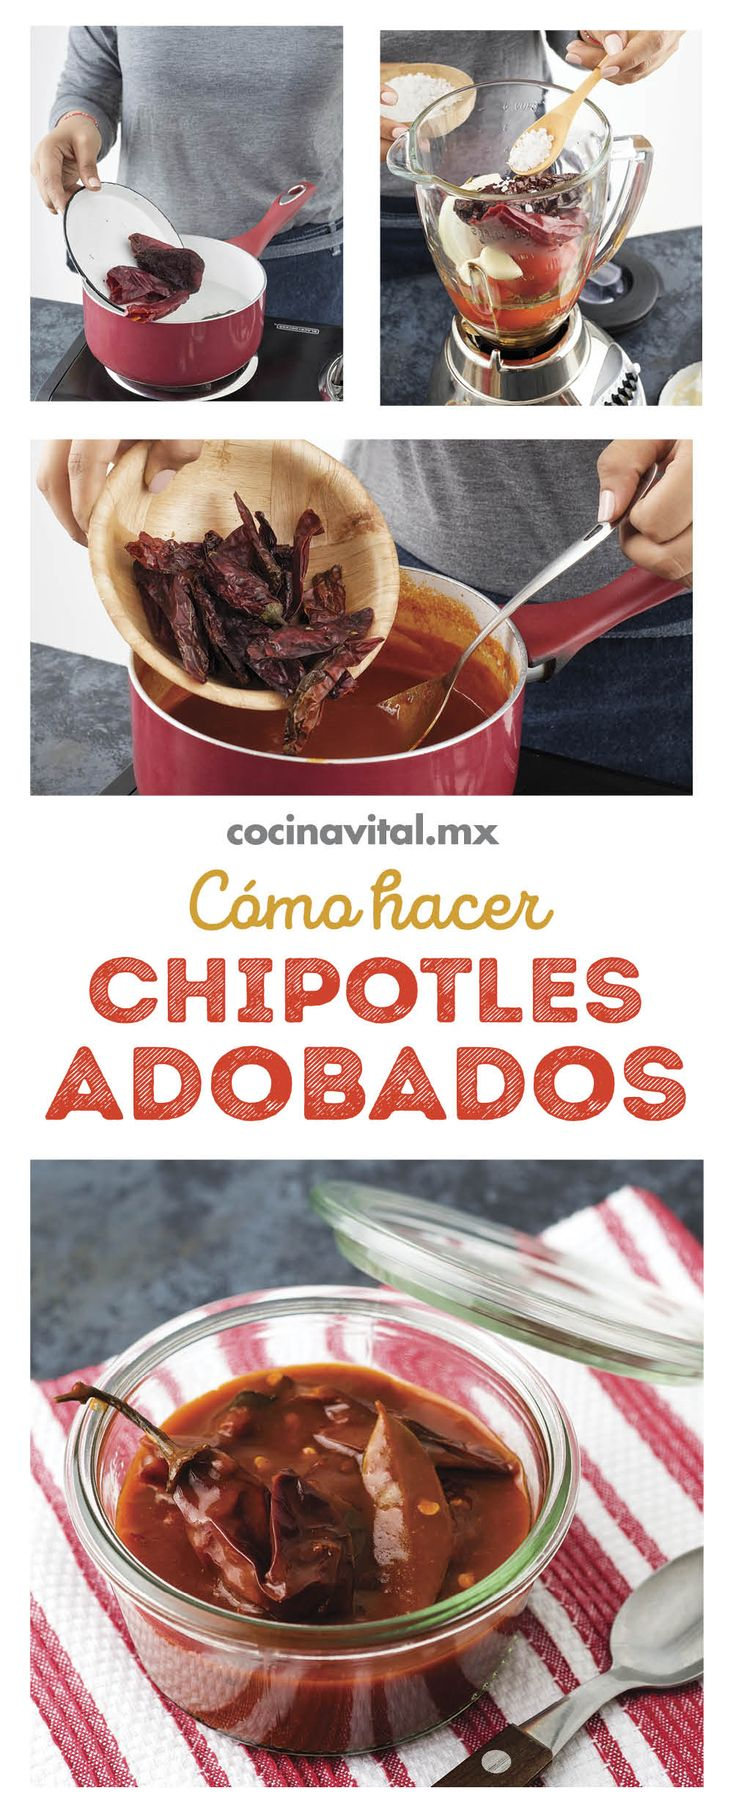 hacer chiles chipotle adobados paso a paso This Easy Mexican pizza recipe is layered with crispy flour tortilla, refried beans, meat, sauce and topped with all your favorite toppings. Chile Chipotle, Mexican Pizza, Flour Tortillas, Refried Beans, Sin Gluten, Nom Nom, Stuffed Peppers, Entertaining, Snacks